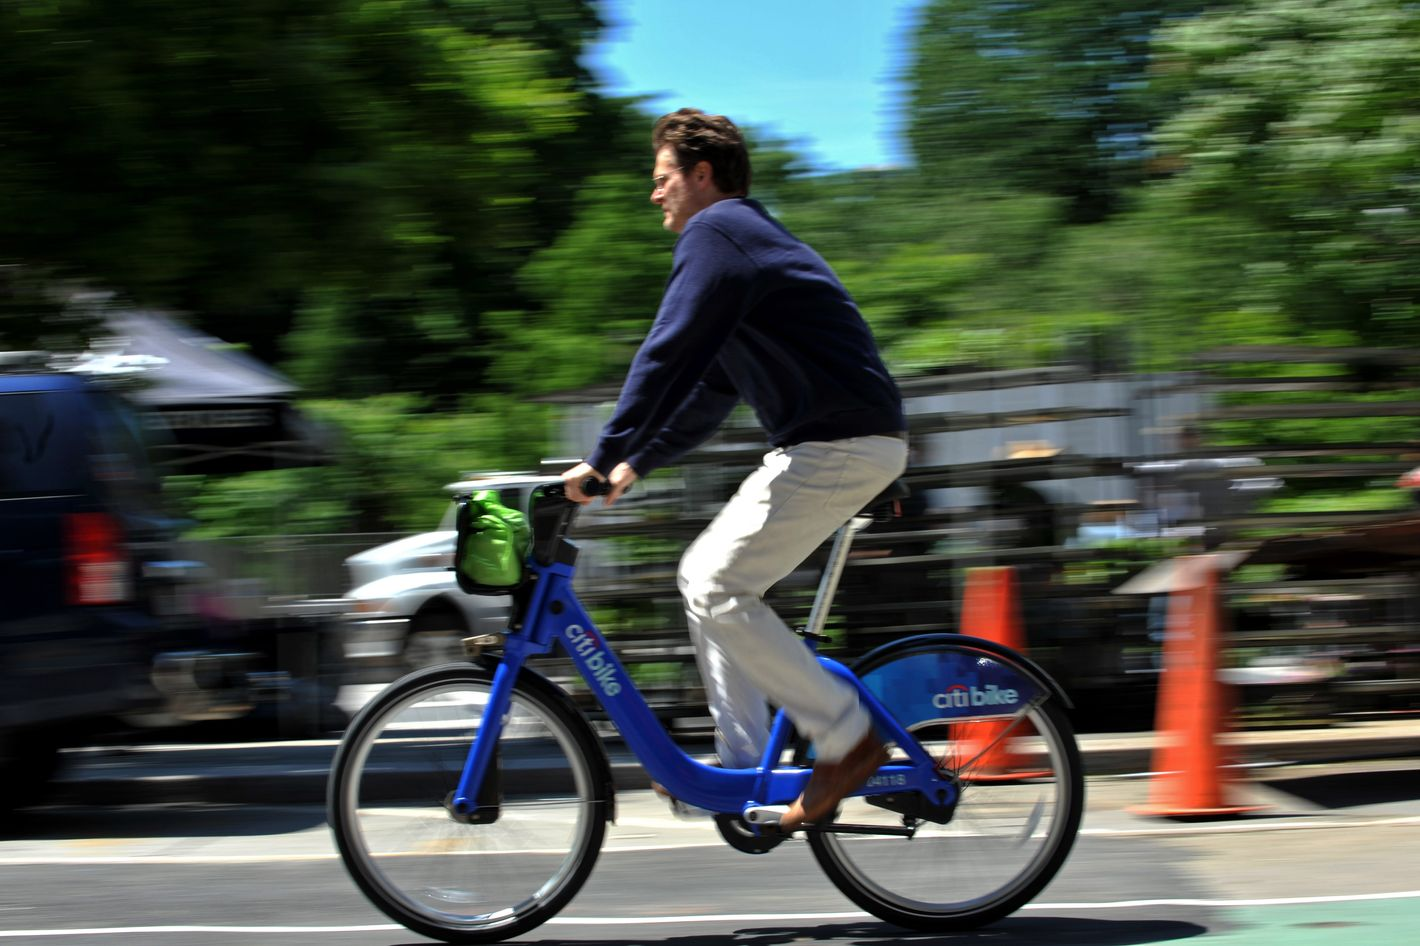 A man rides a Citi Bike bicycle near Union Square as the bike sharing system is launched May 27, 2013 in New York. About 330 stations in Manhattan and Brooklyn will have thousands of bicycles for rent.